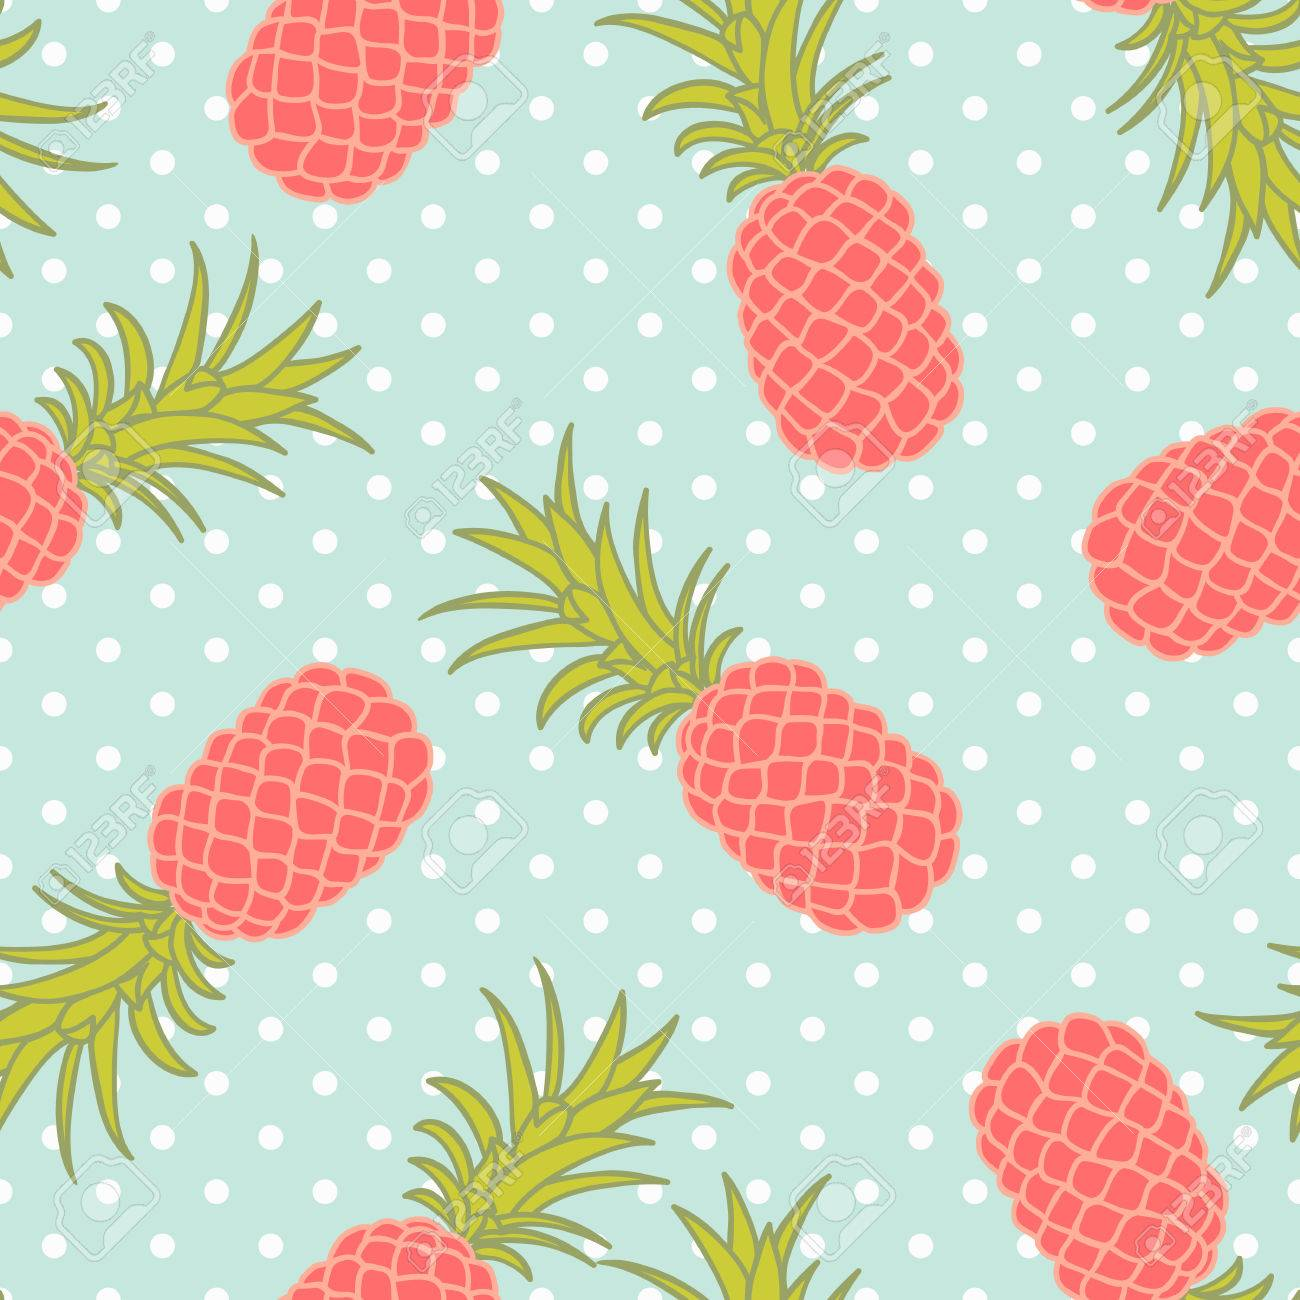 Seamless pineapple pattern with polka dots - 51746720